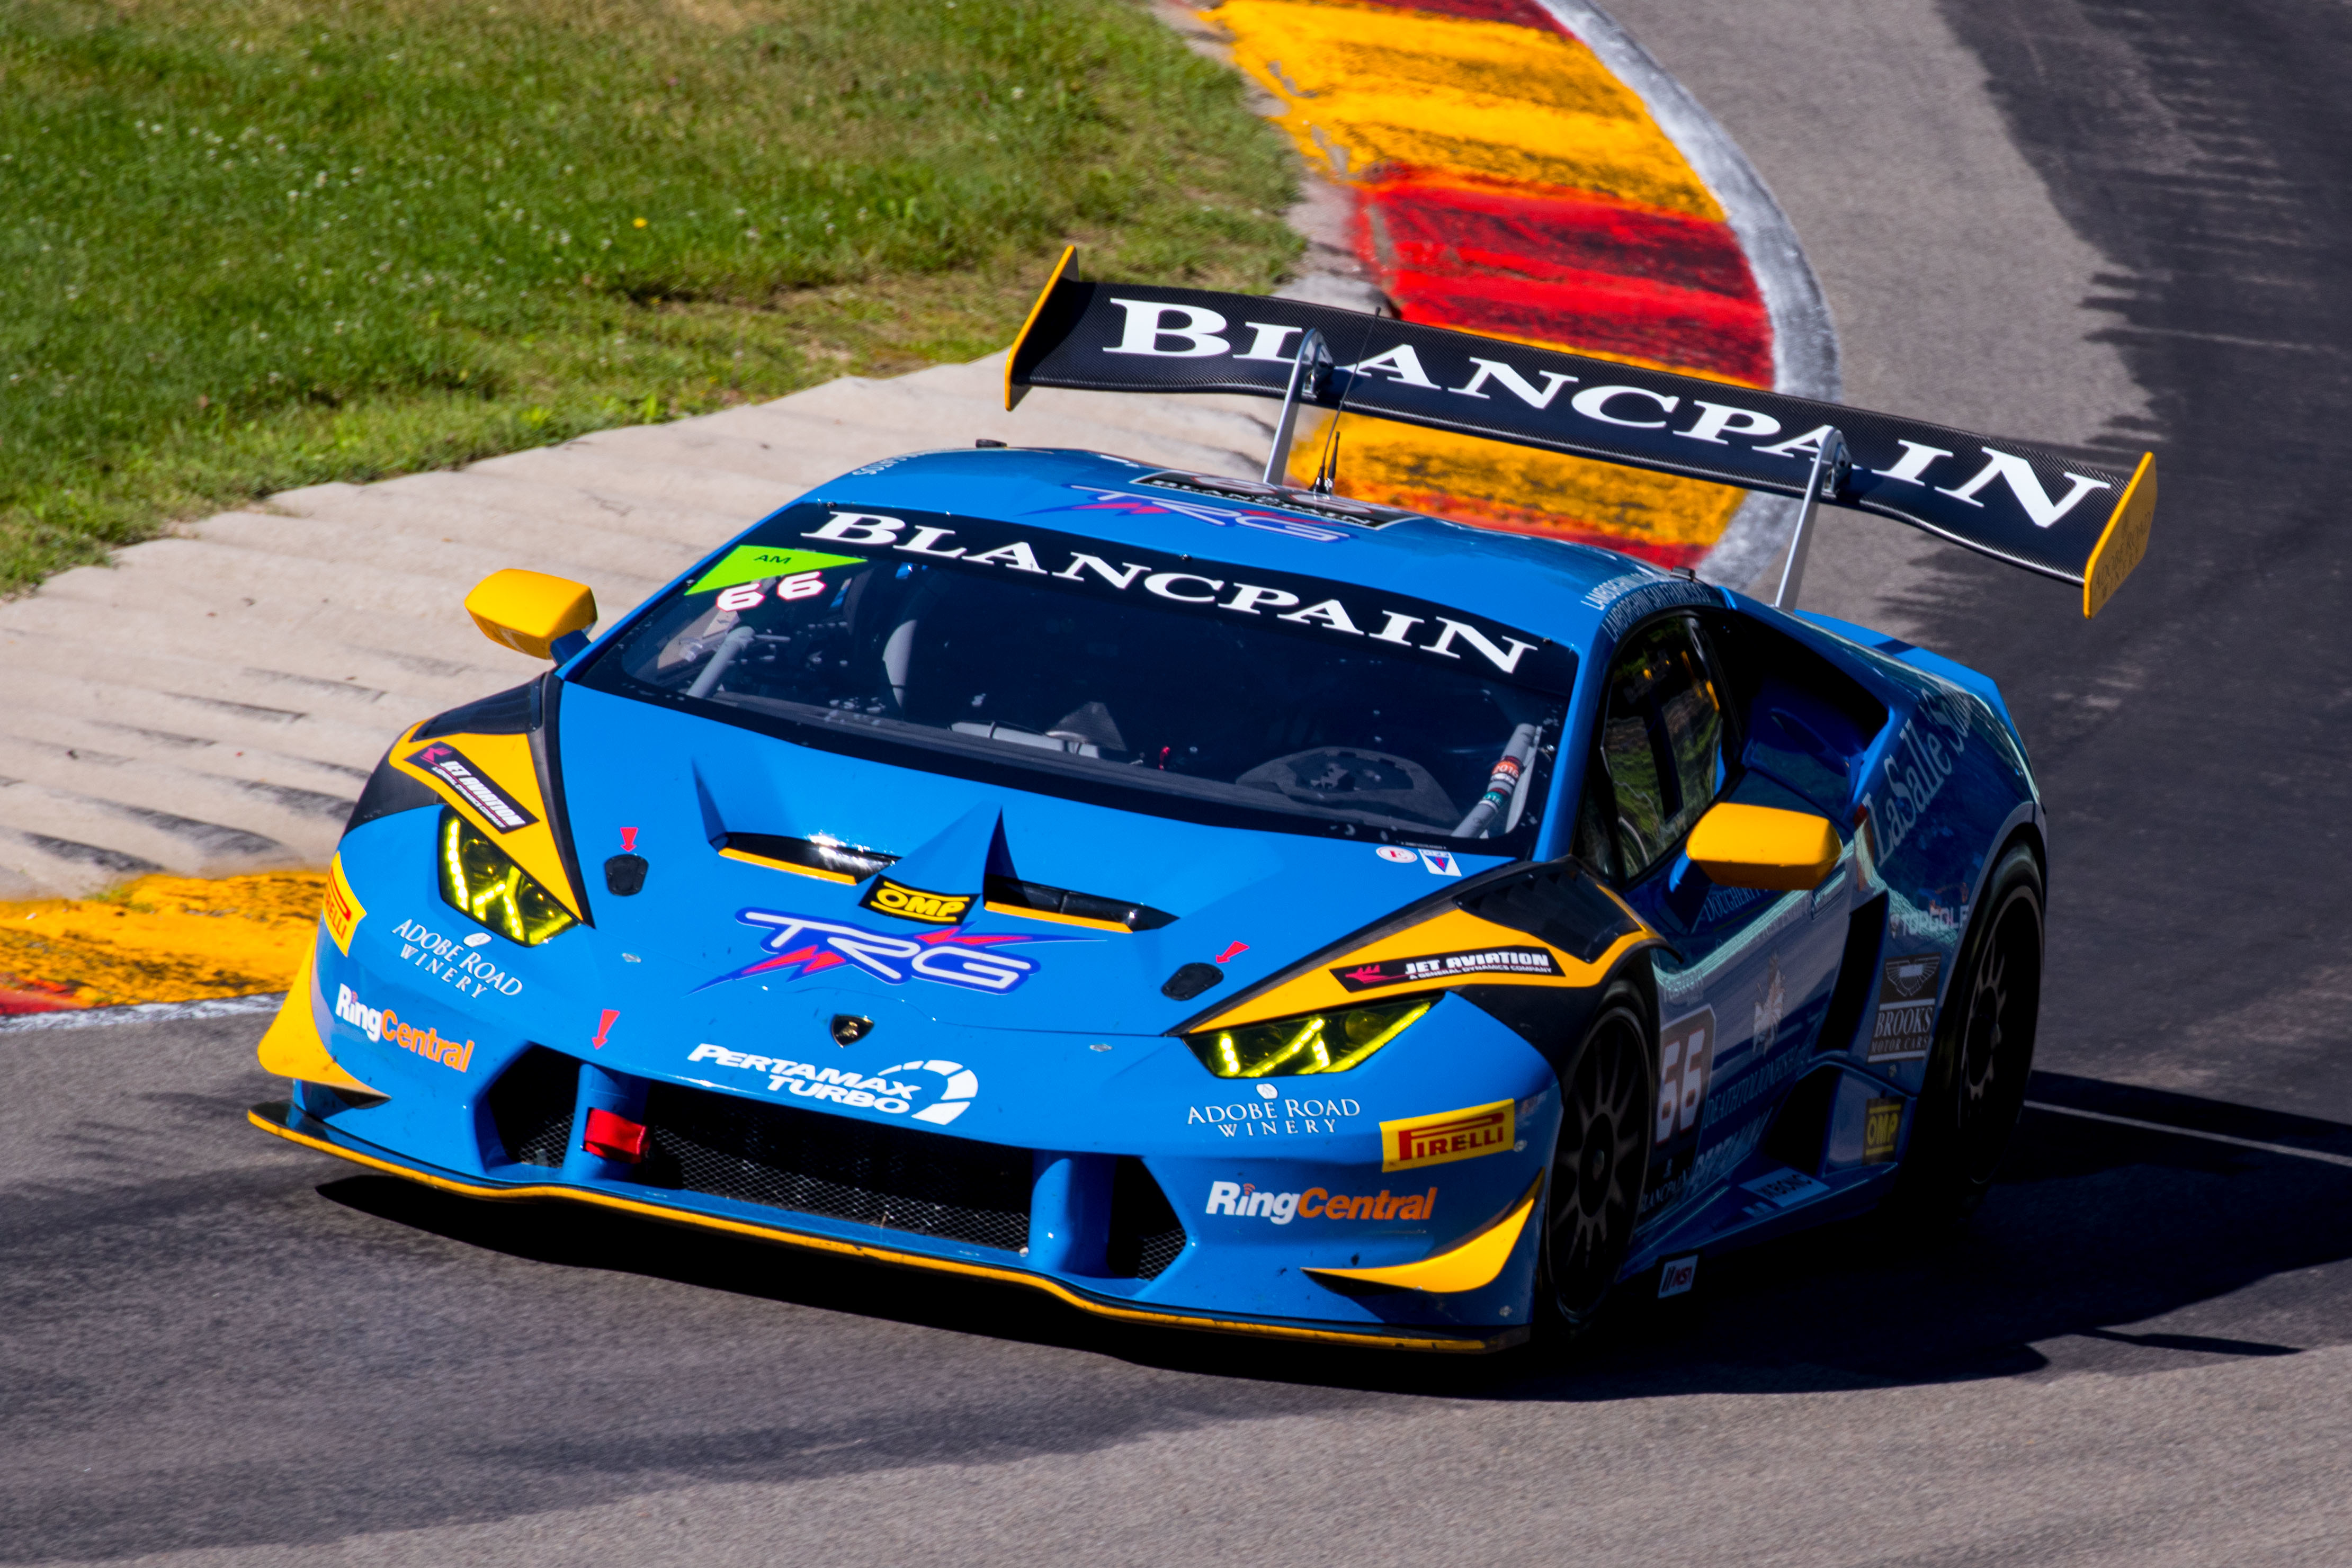 TRG Lamborghini's Weekend of Italian Racing and Californian Wines at Road America